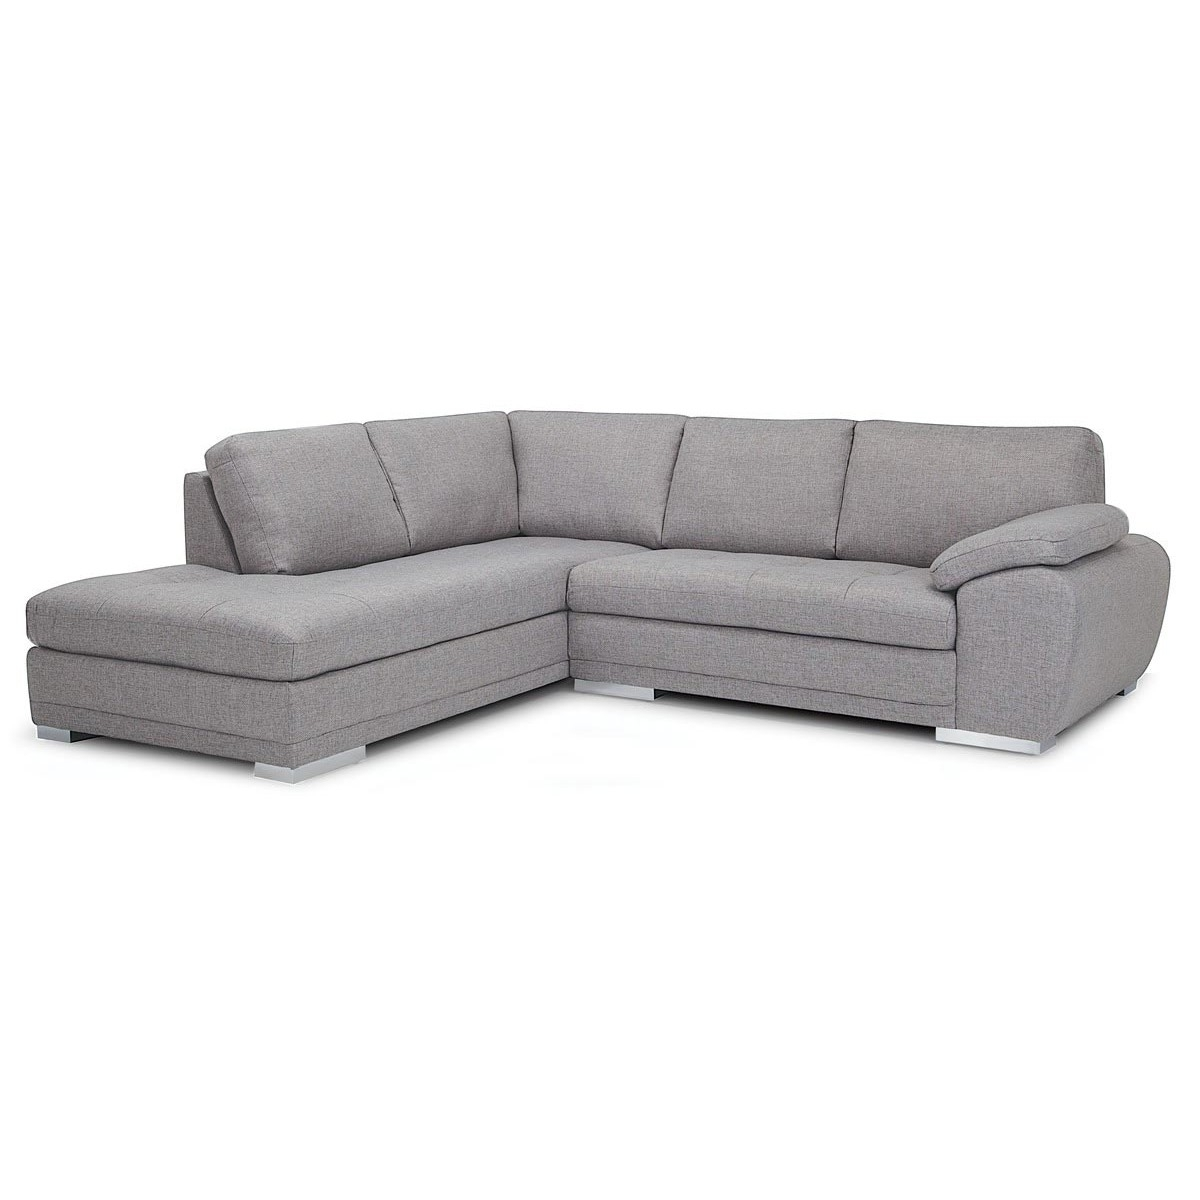 Danco Modern Regarding Well Known Miami Sectional Sofas (View 18 of 20)